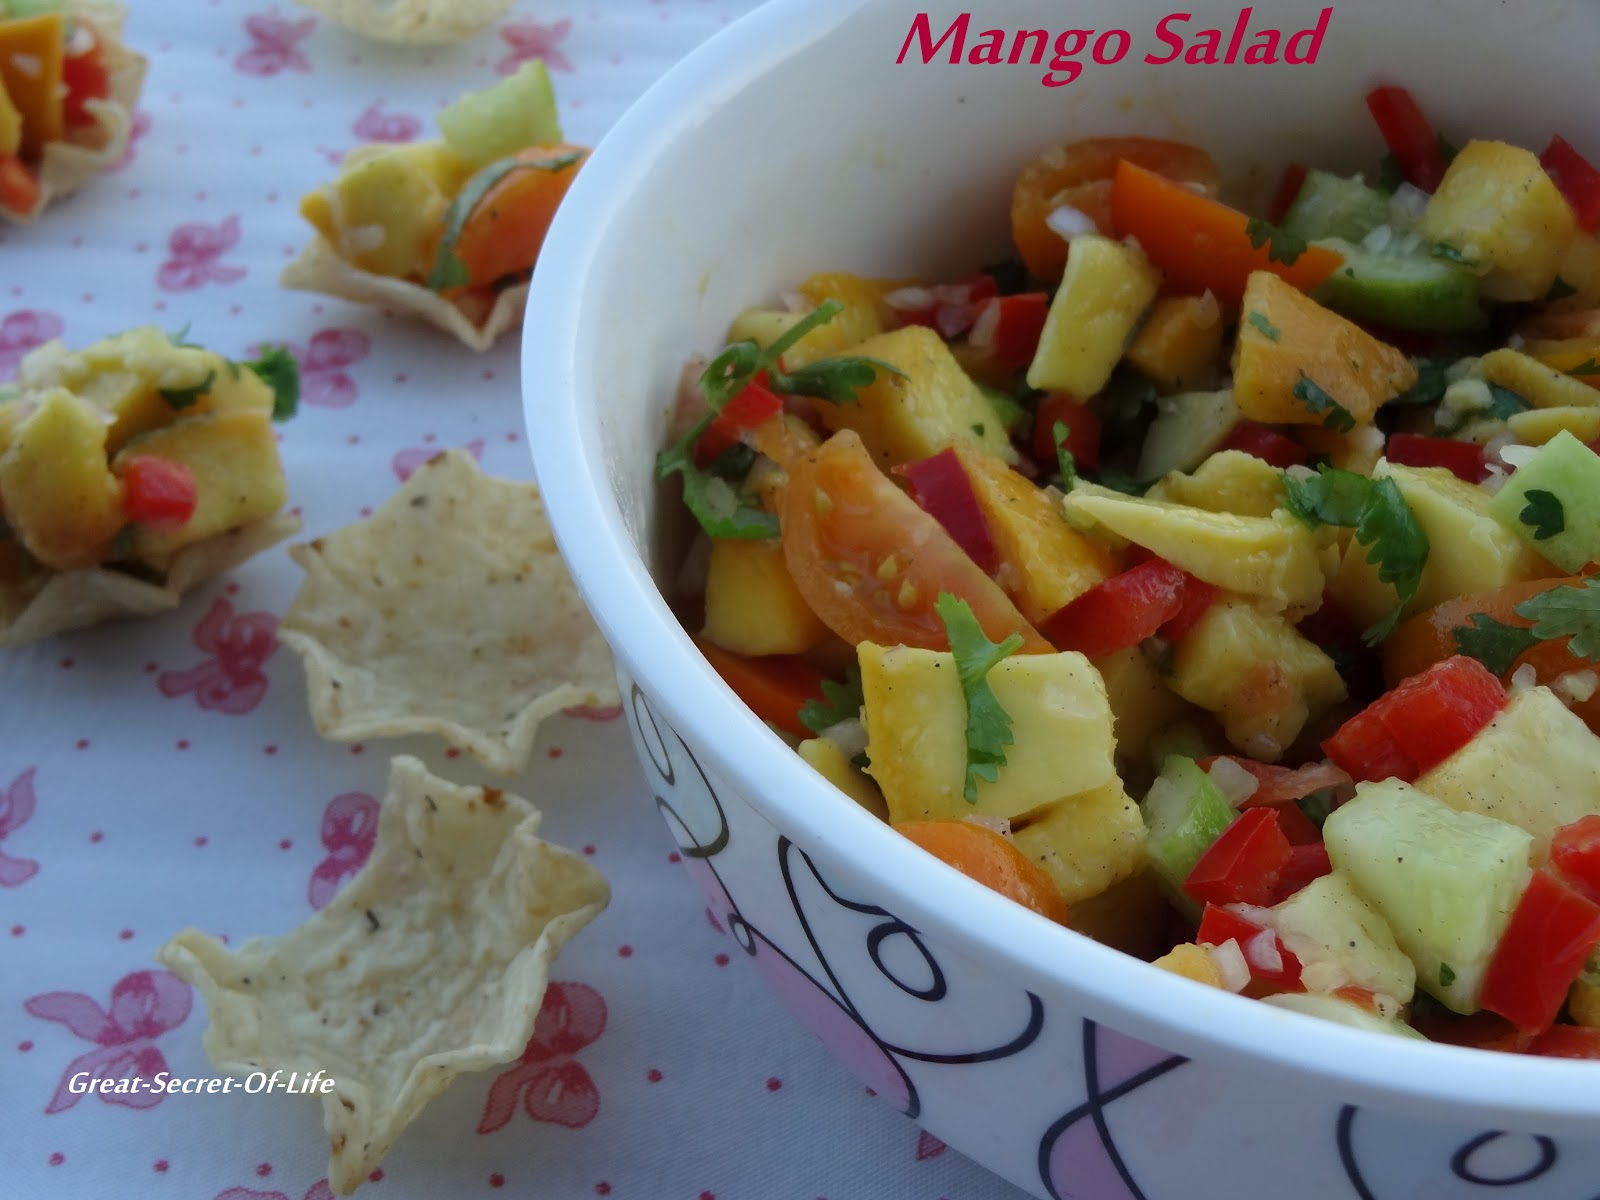 Mango Salad| Great-secret-of-life